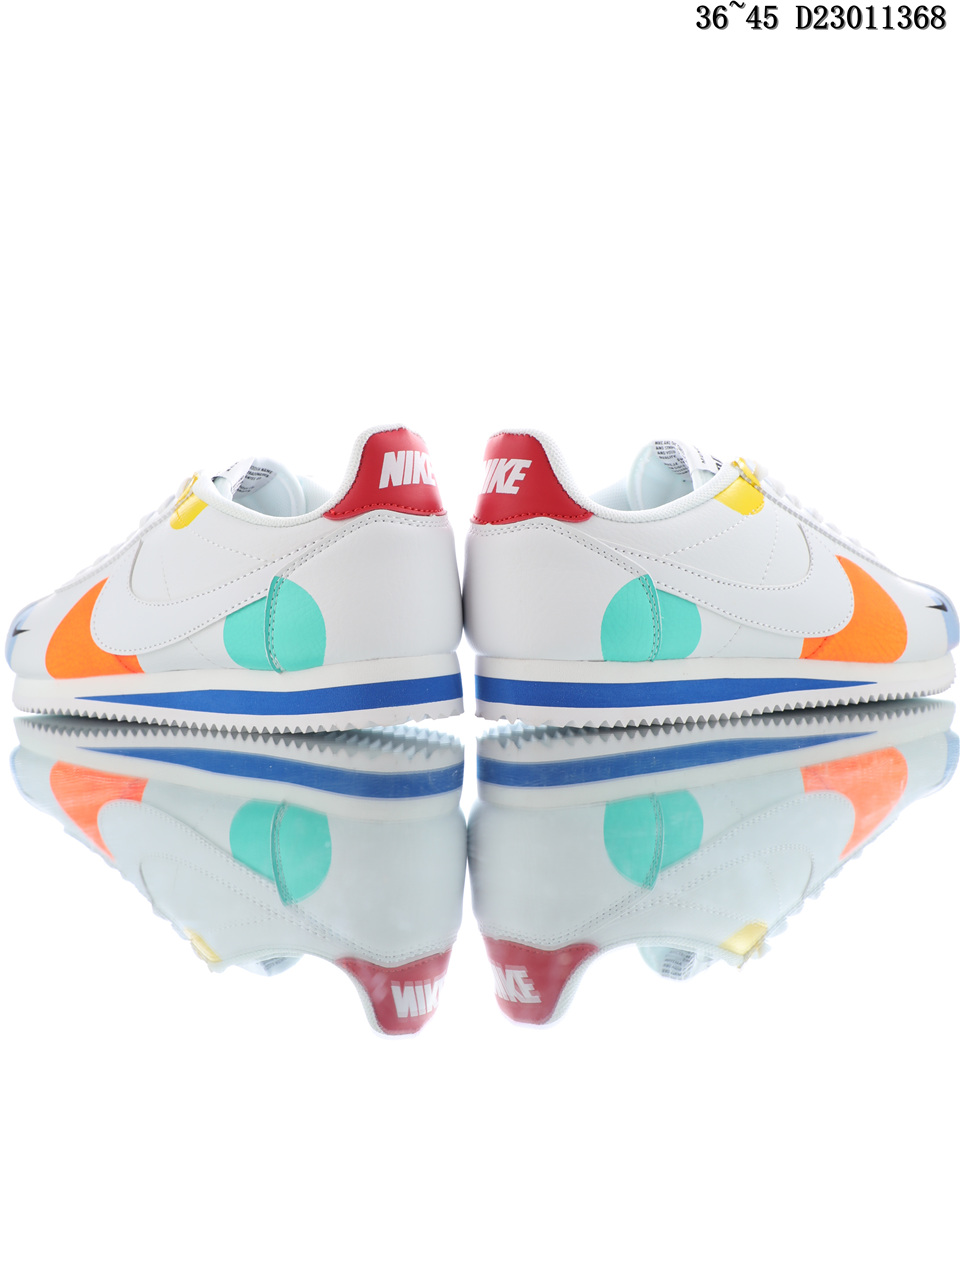 Nike Classic Cortez Running Shoes Color Blue White Orange Behind